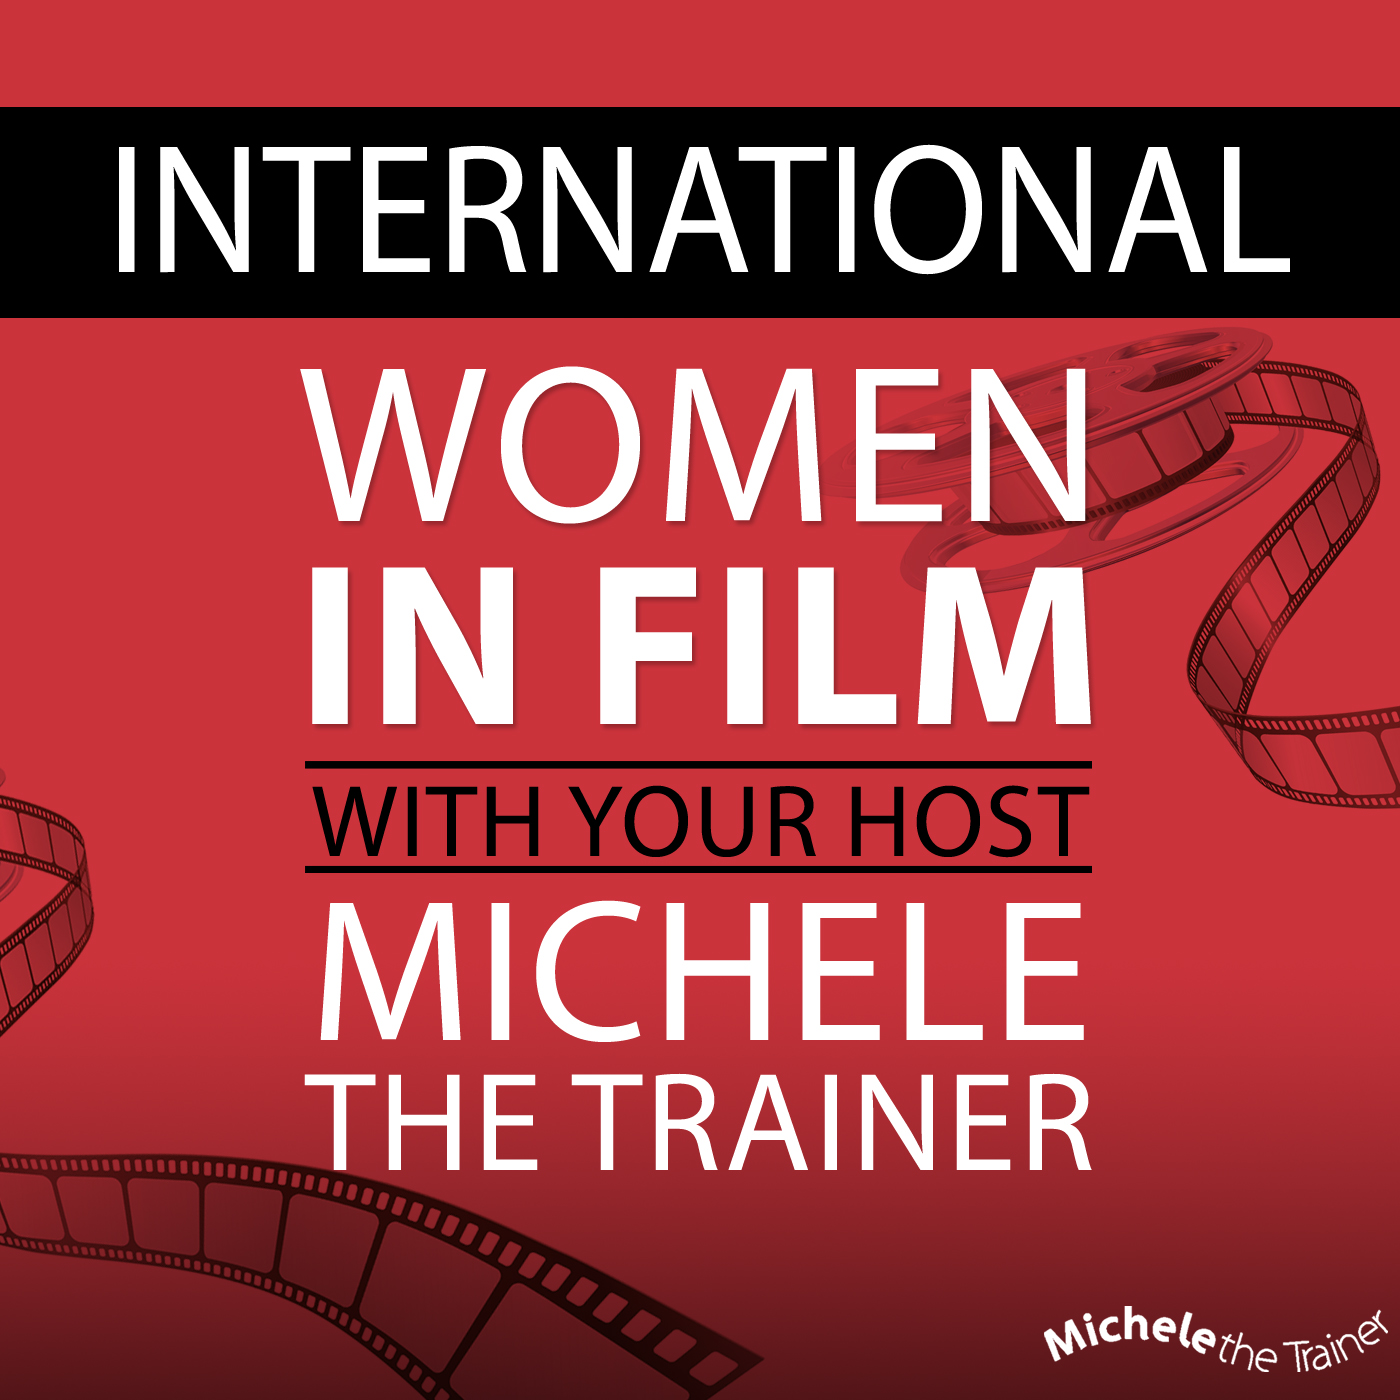 International Women In Film